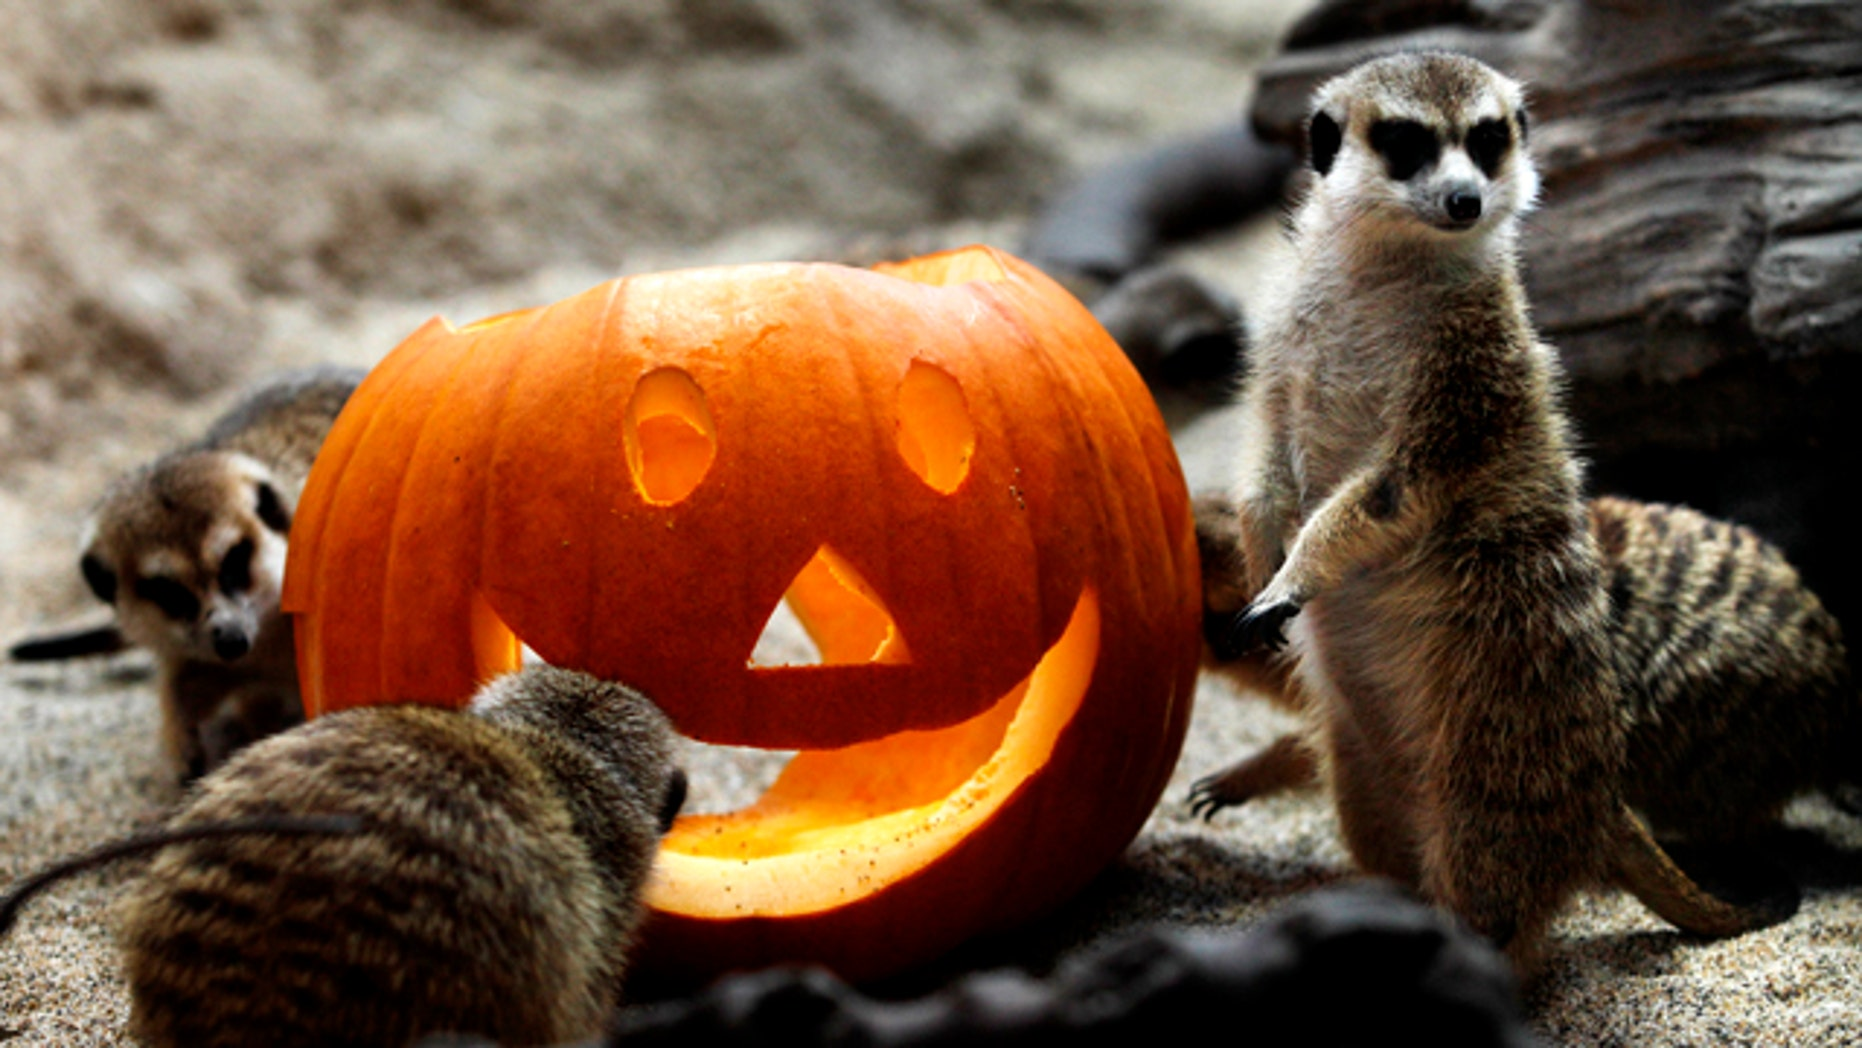 A group of meerkats explore a Halloween pumpkin, Thursday, Oct. 27, 2011, at the Woodland Park Zoo in Seattle.